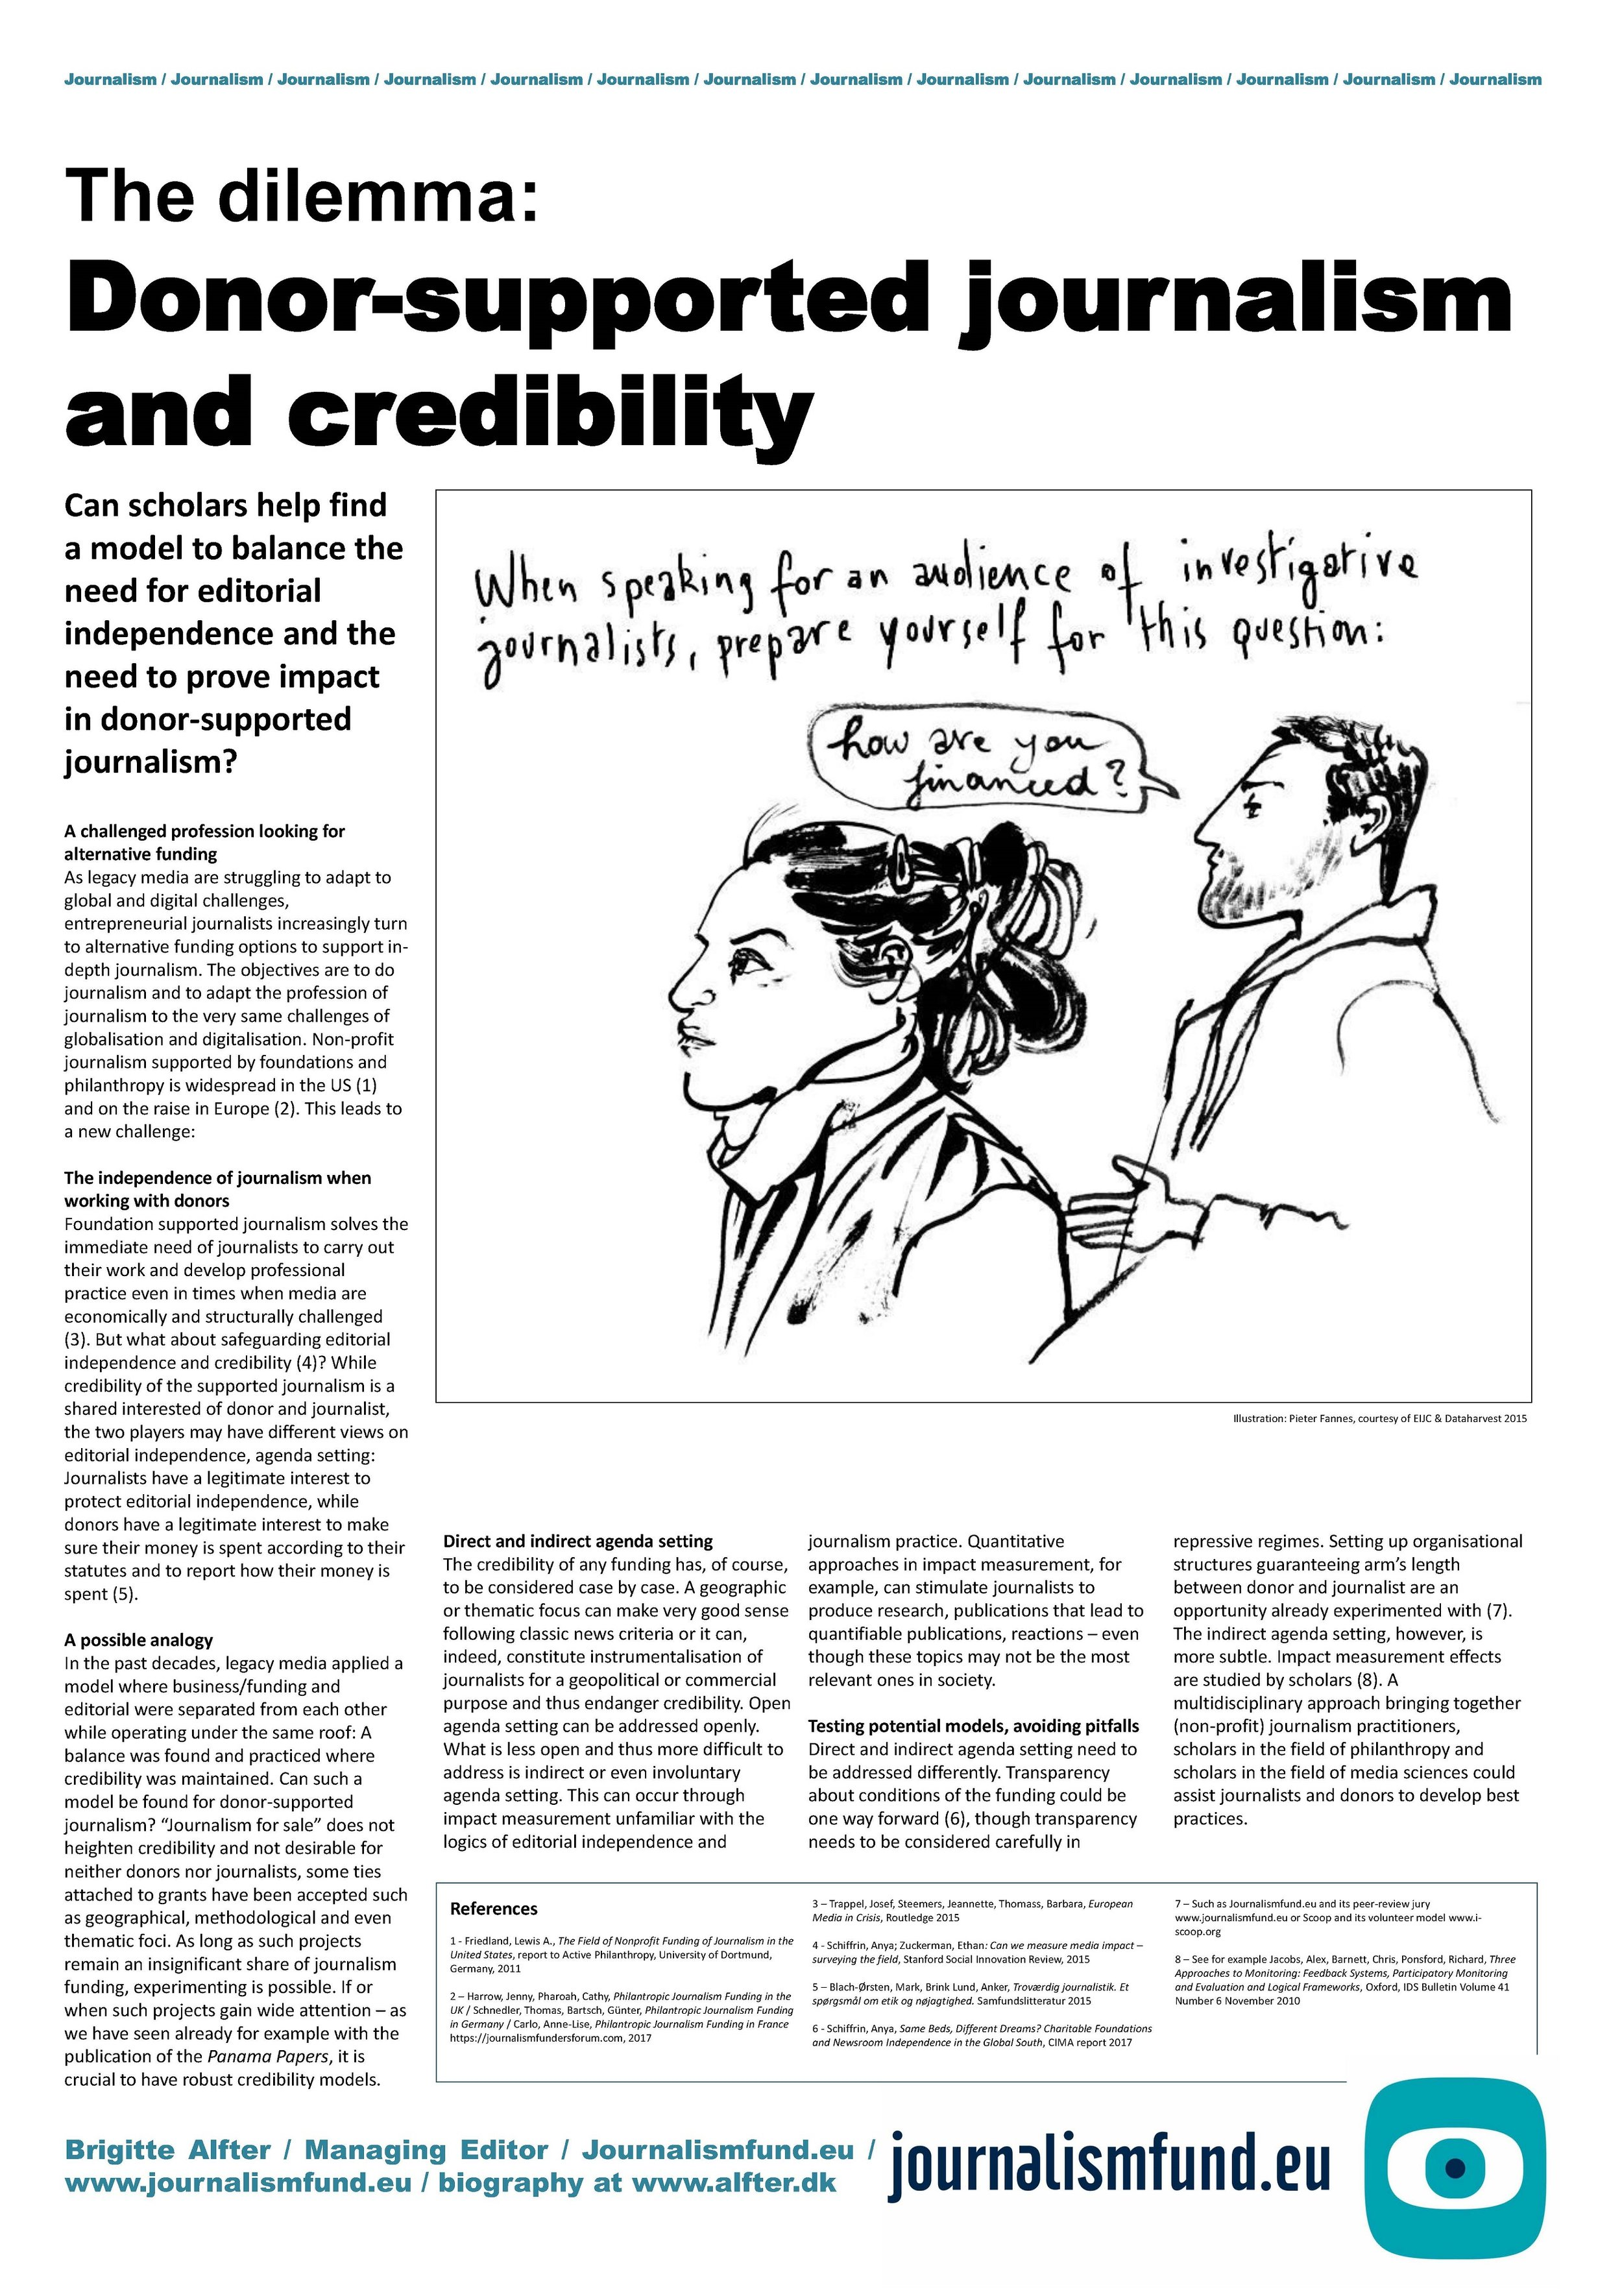 Brigitte Alfer - The dilemma: Donor-supported journalism and credibility